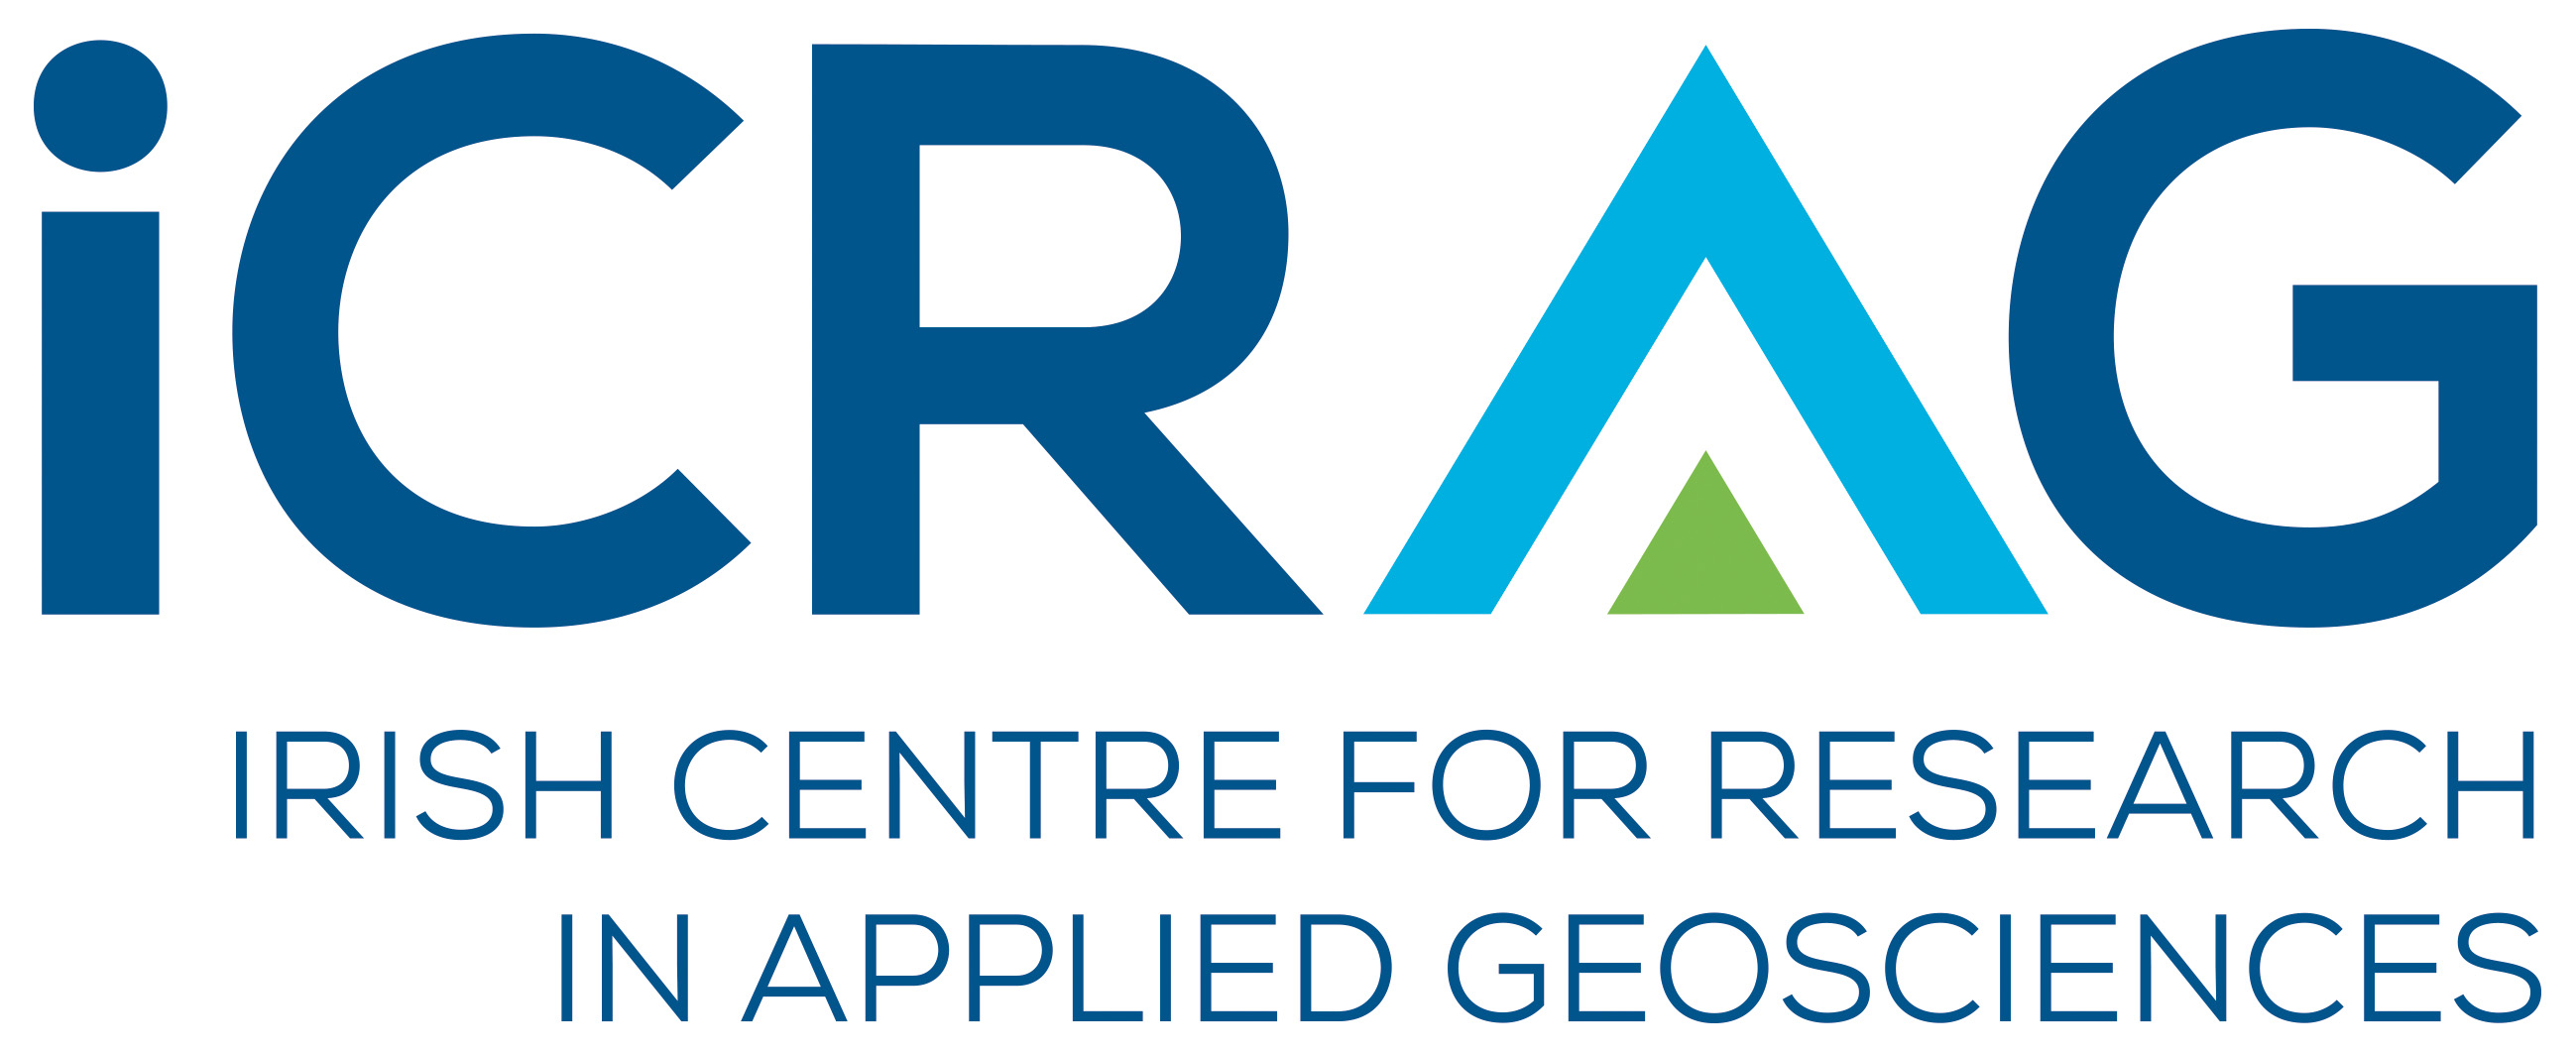 Irish Centre for Research in Applied Geoscience